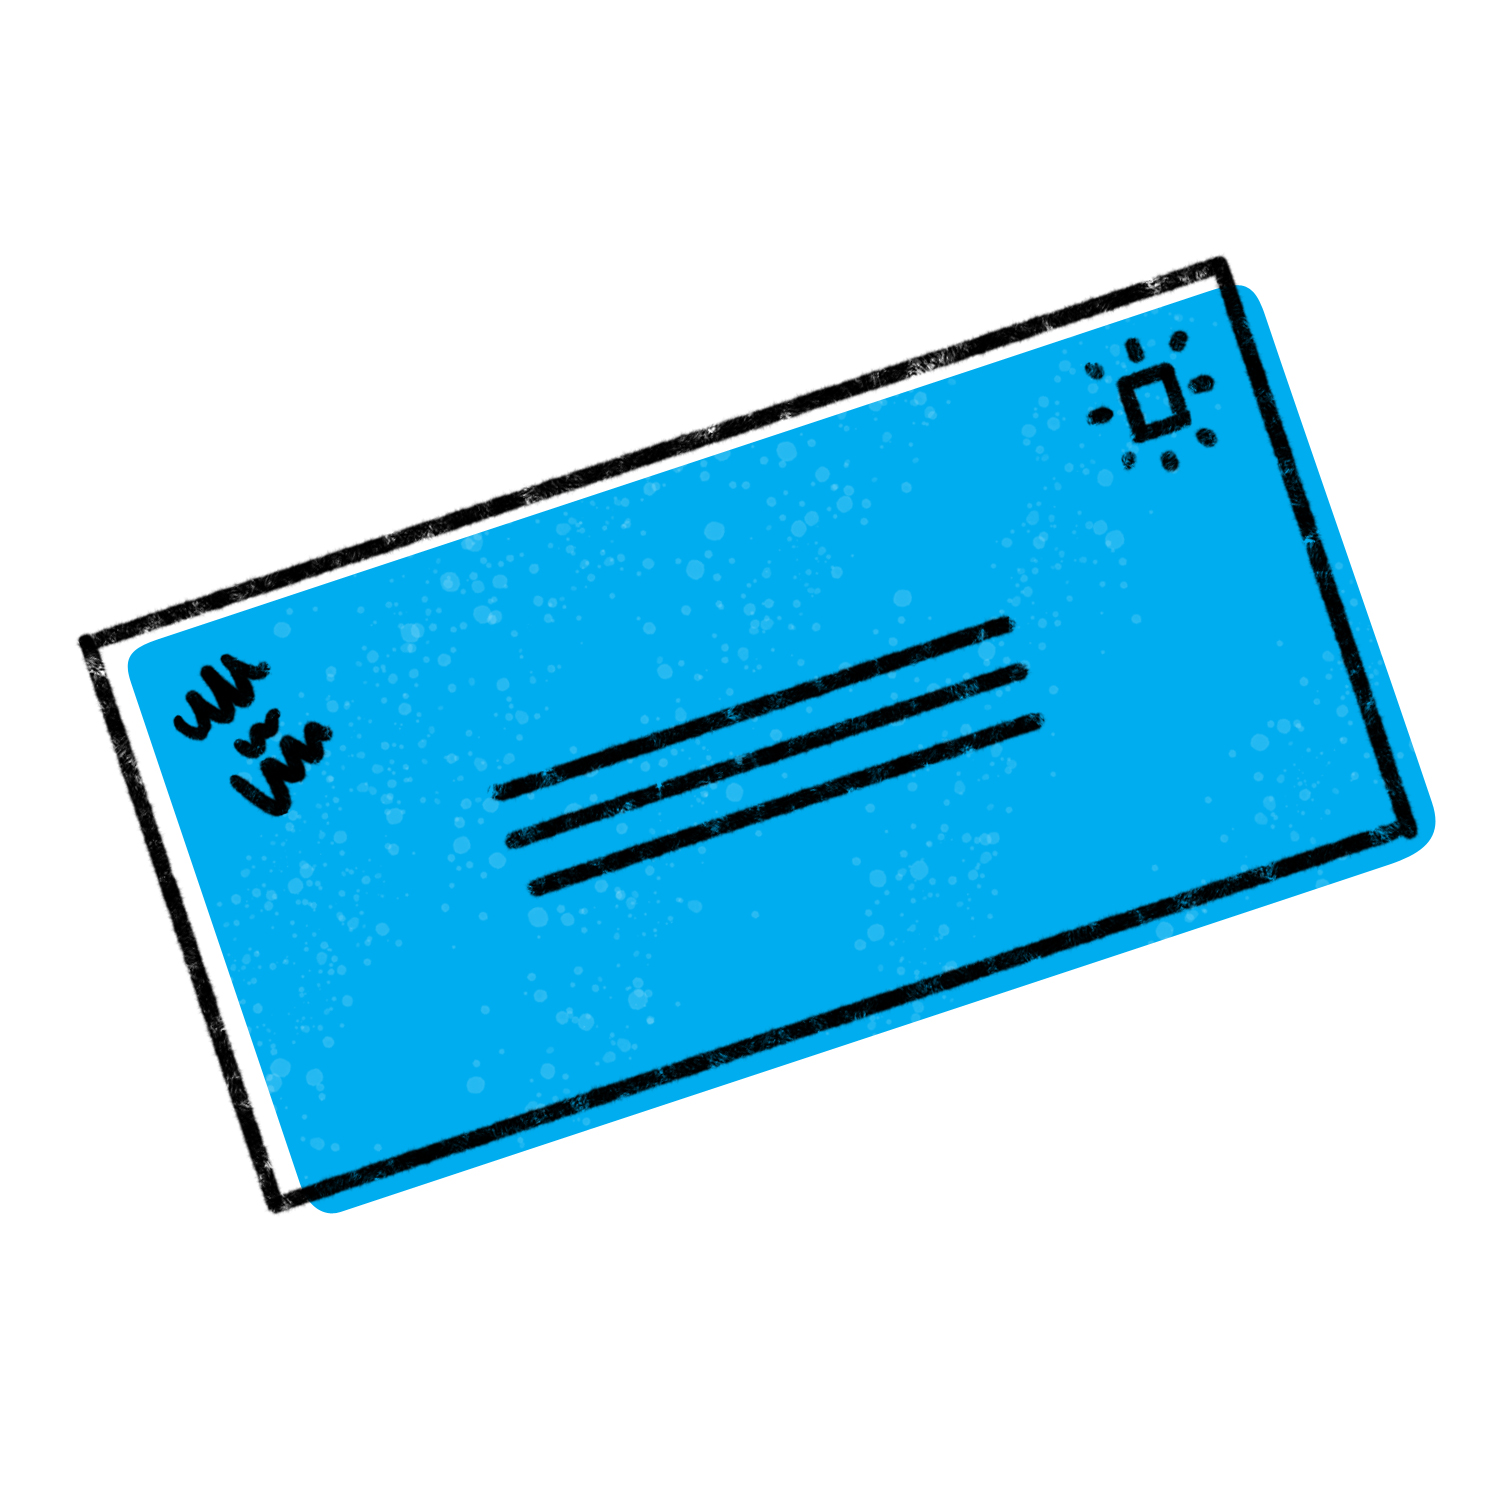 04-WaysToDonate_Envelope.jpg